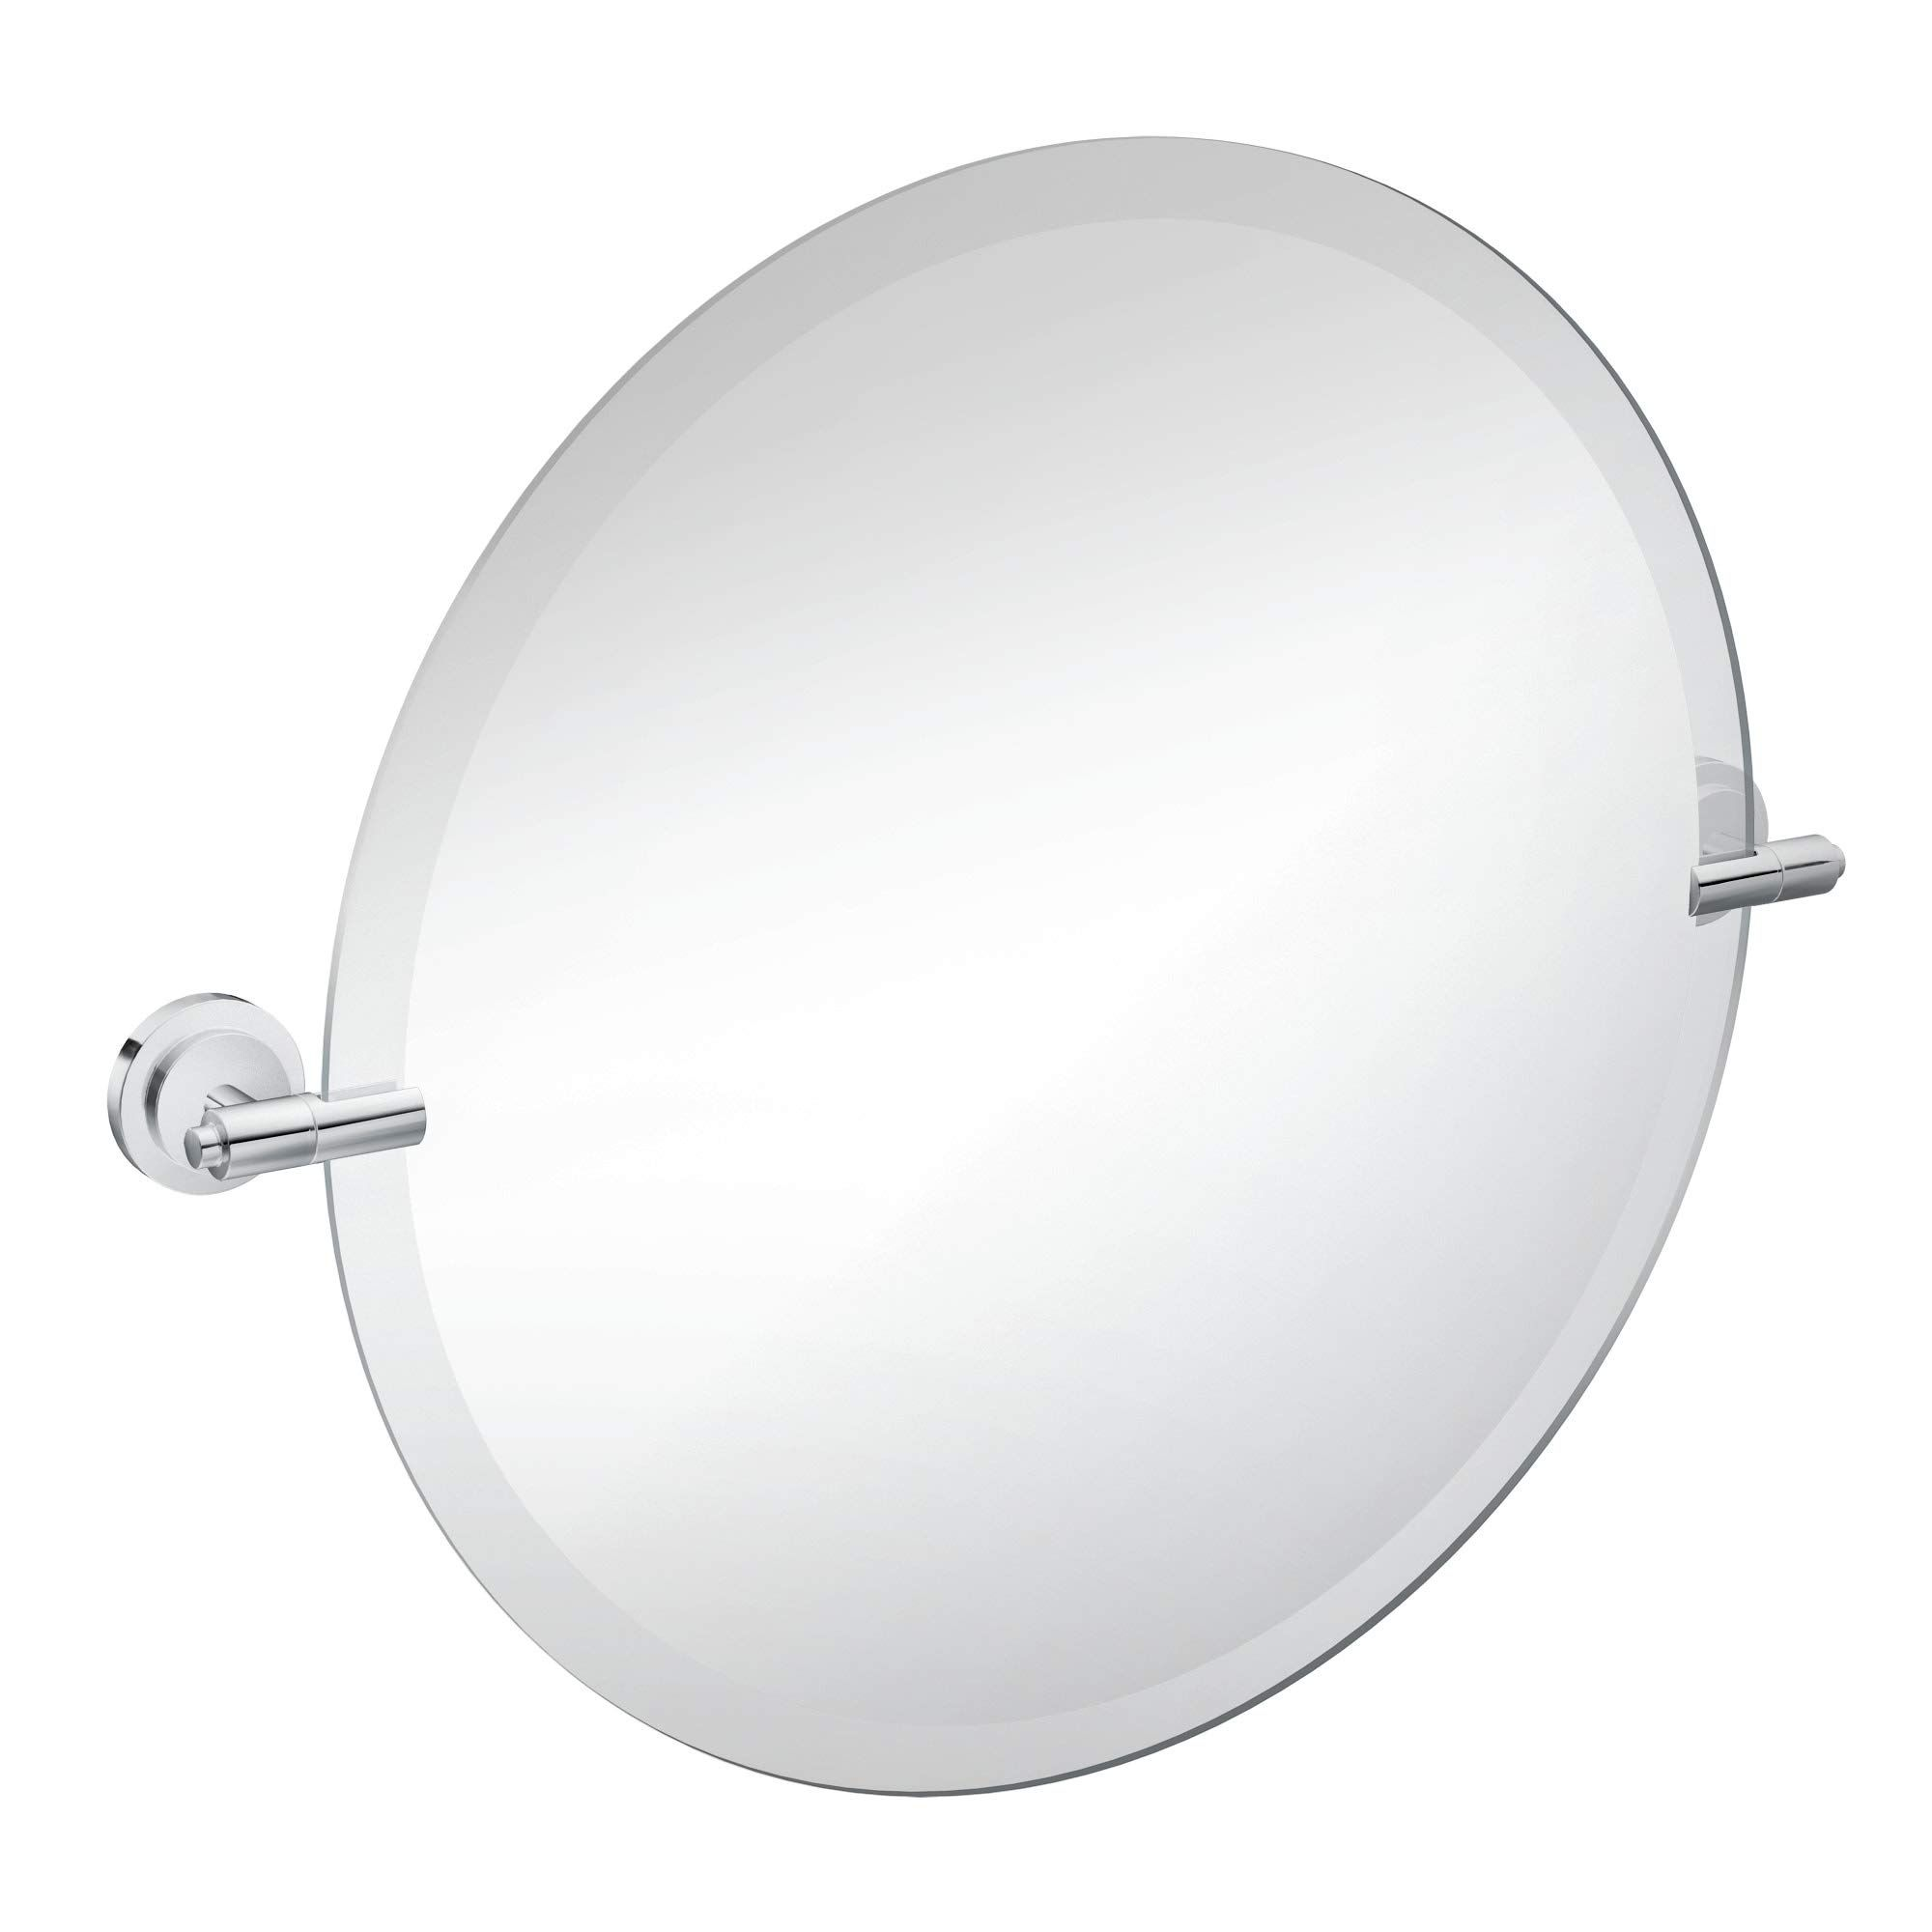 Moen Dn0792ch Iso 22 Inch X 22 Inch Frameless Pivoting Bathroom Tilting Mirror Chrome You Can Get Additional Detai In 2020 Vanity Mirror Mirror Wall Mounted Vanity